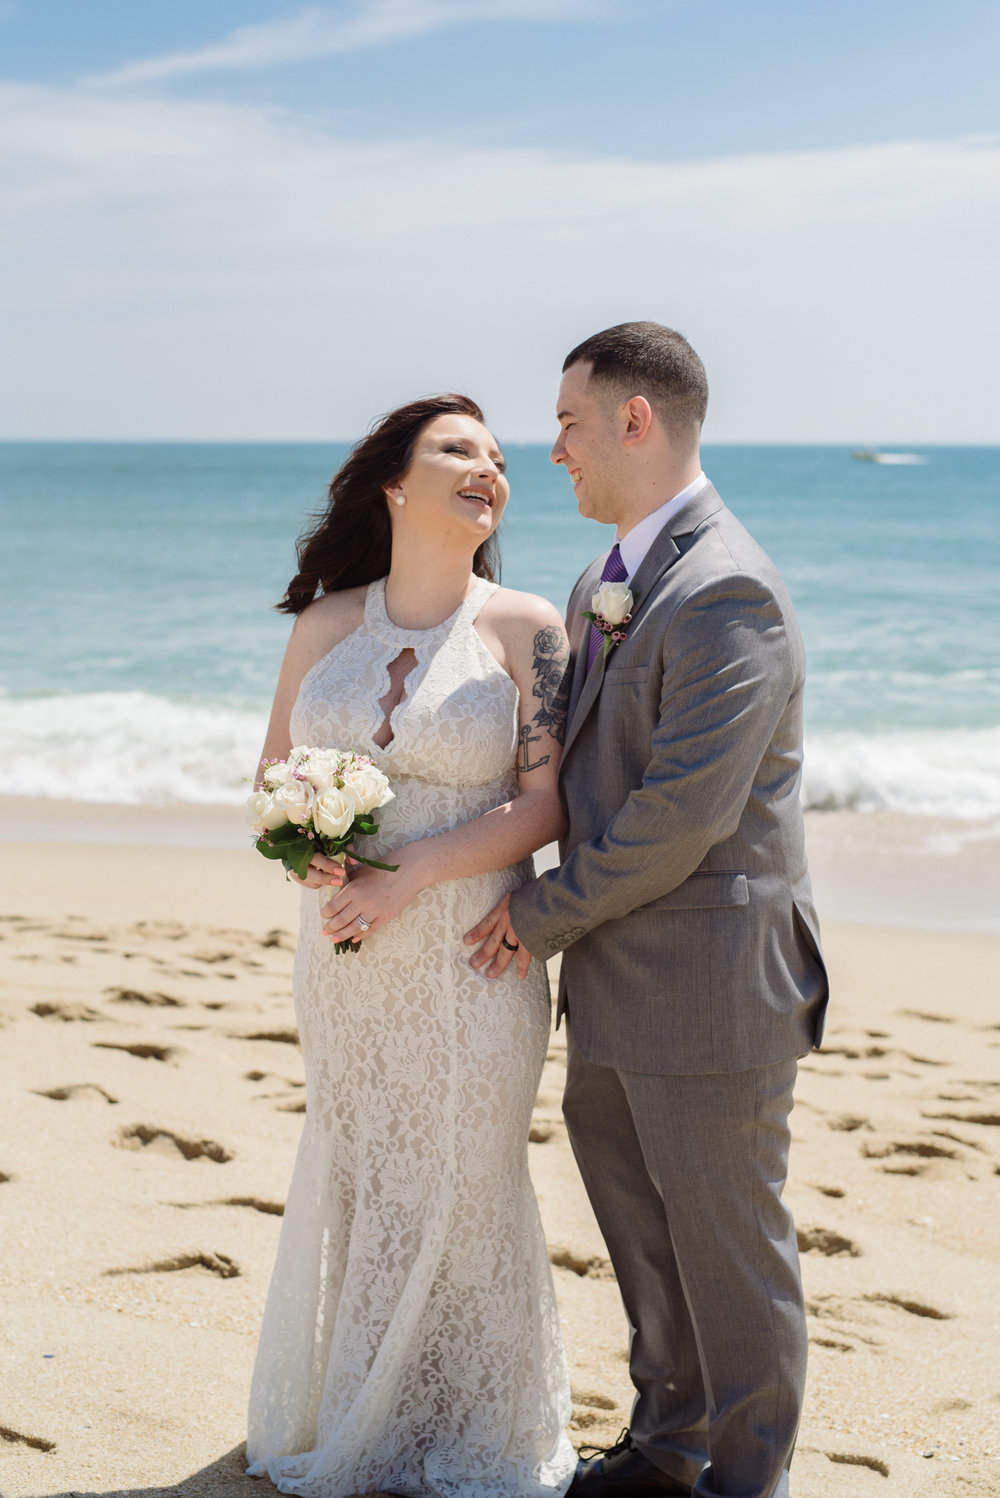 Caitlyn+Anthony- Belmar Beach Elopement- New Jersey Weddings- Olivia Christina Photo-128.JPG